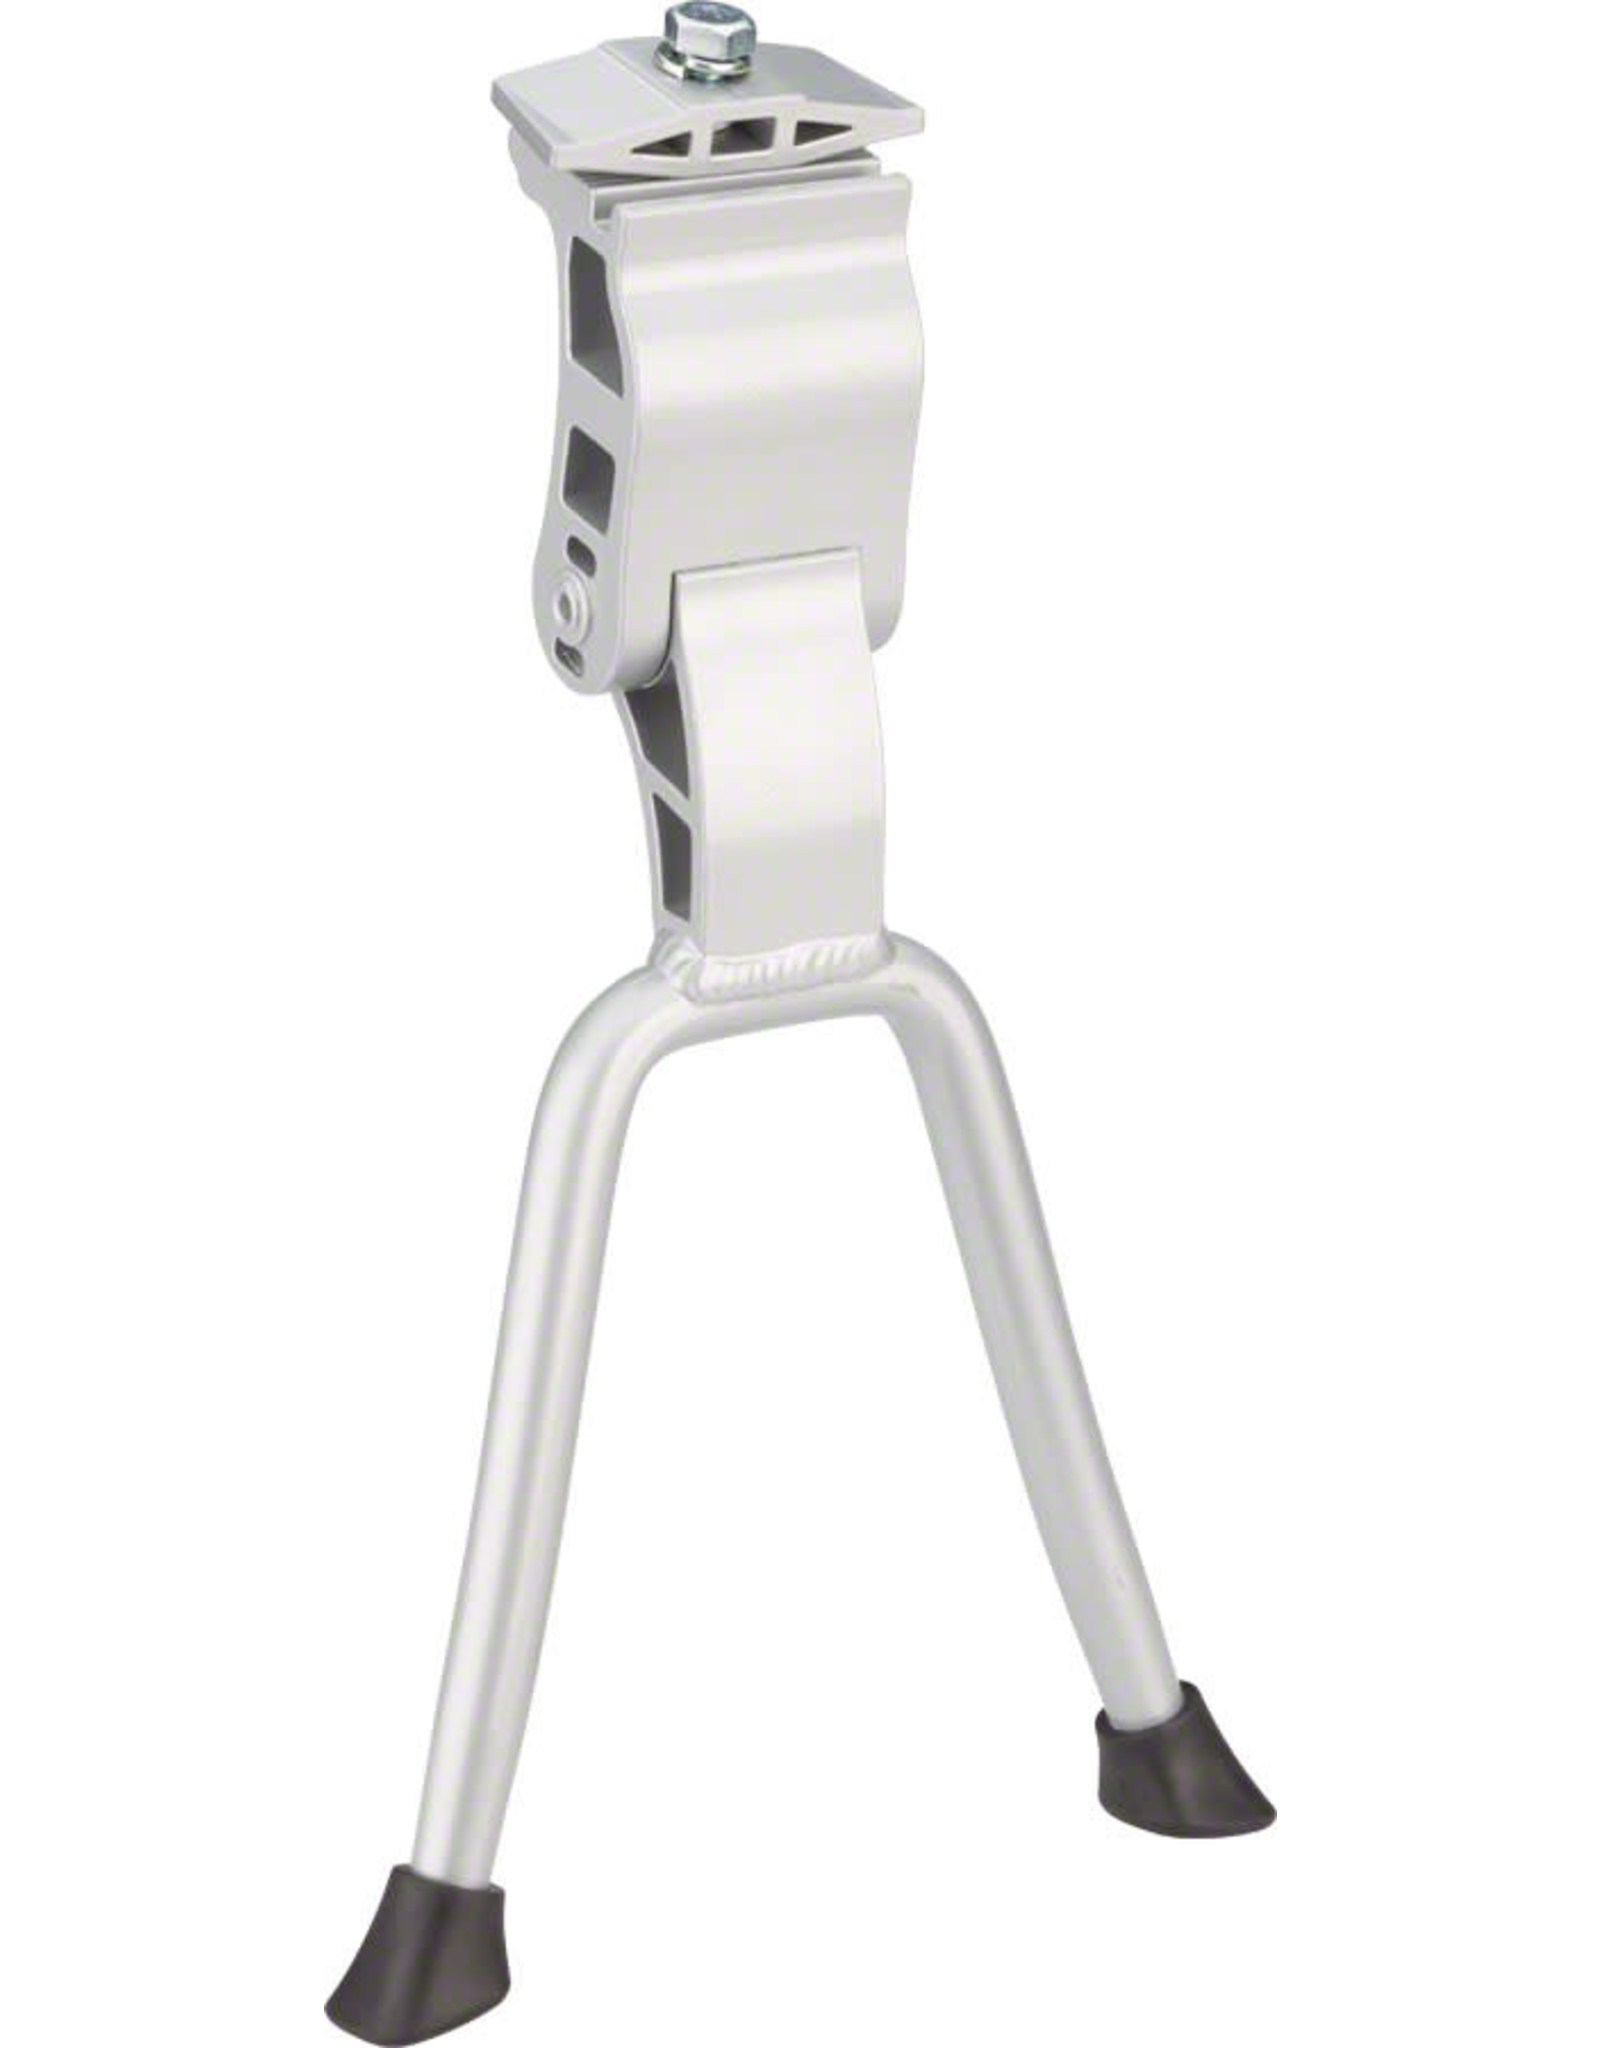 MSW MSW KS-300 Two-Leg Kickstand with Top Plate Silver